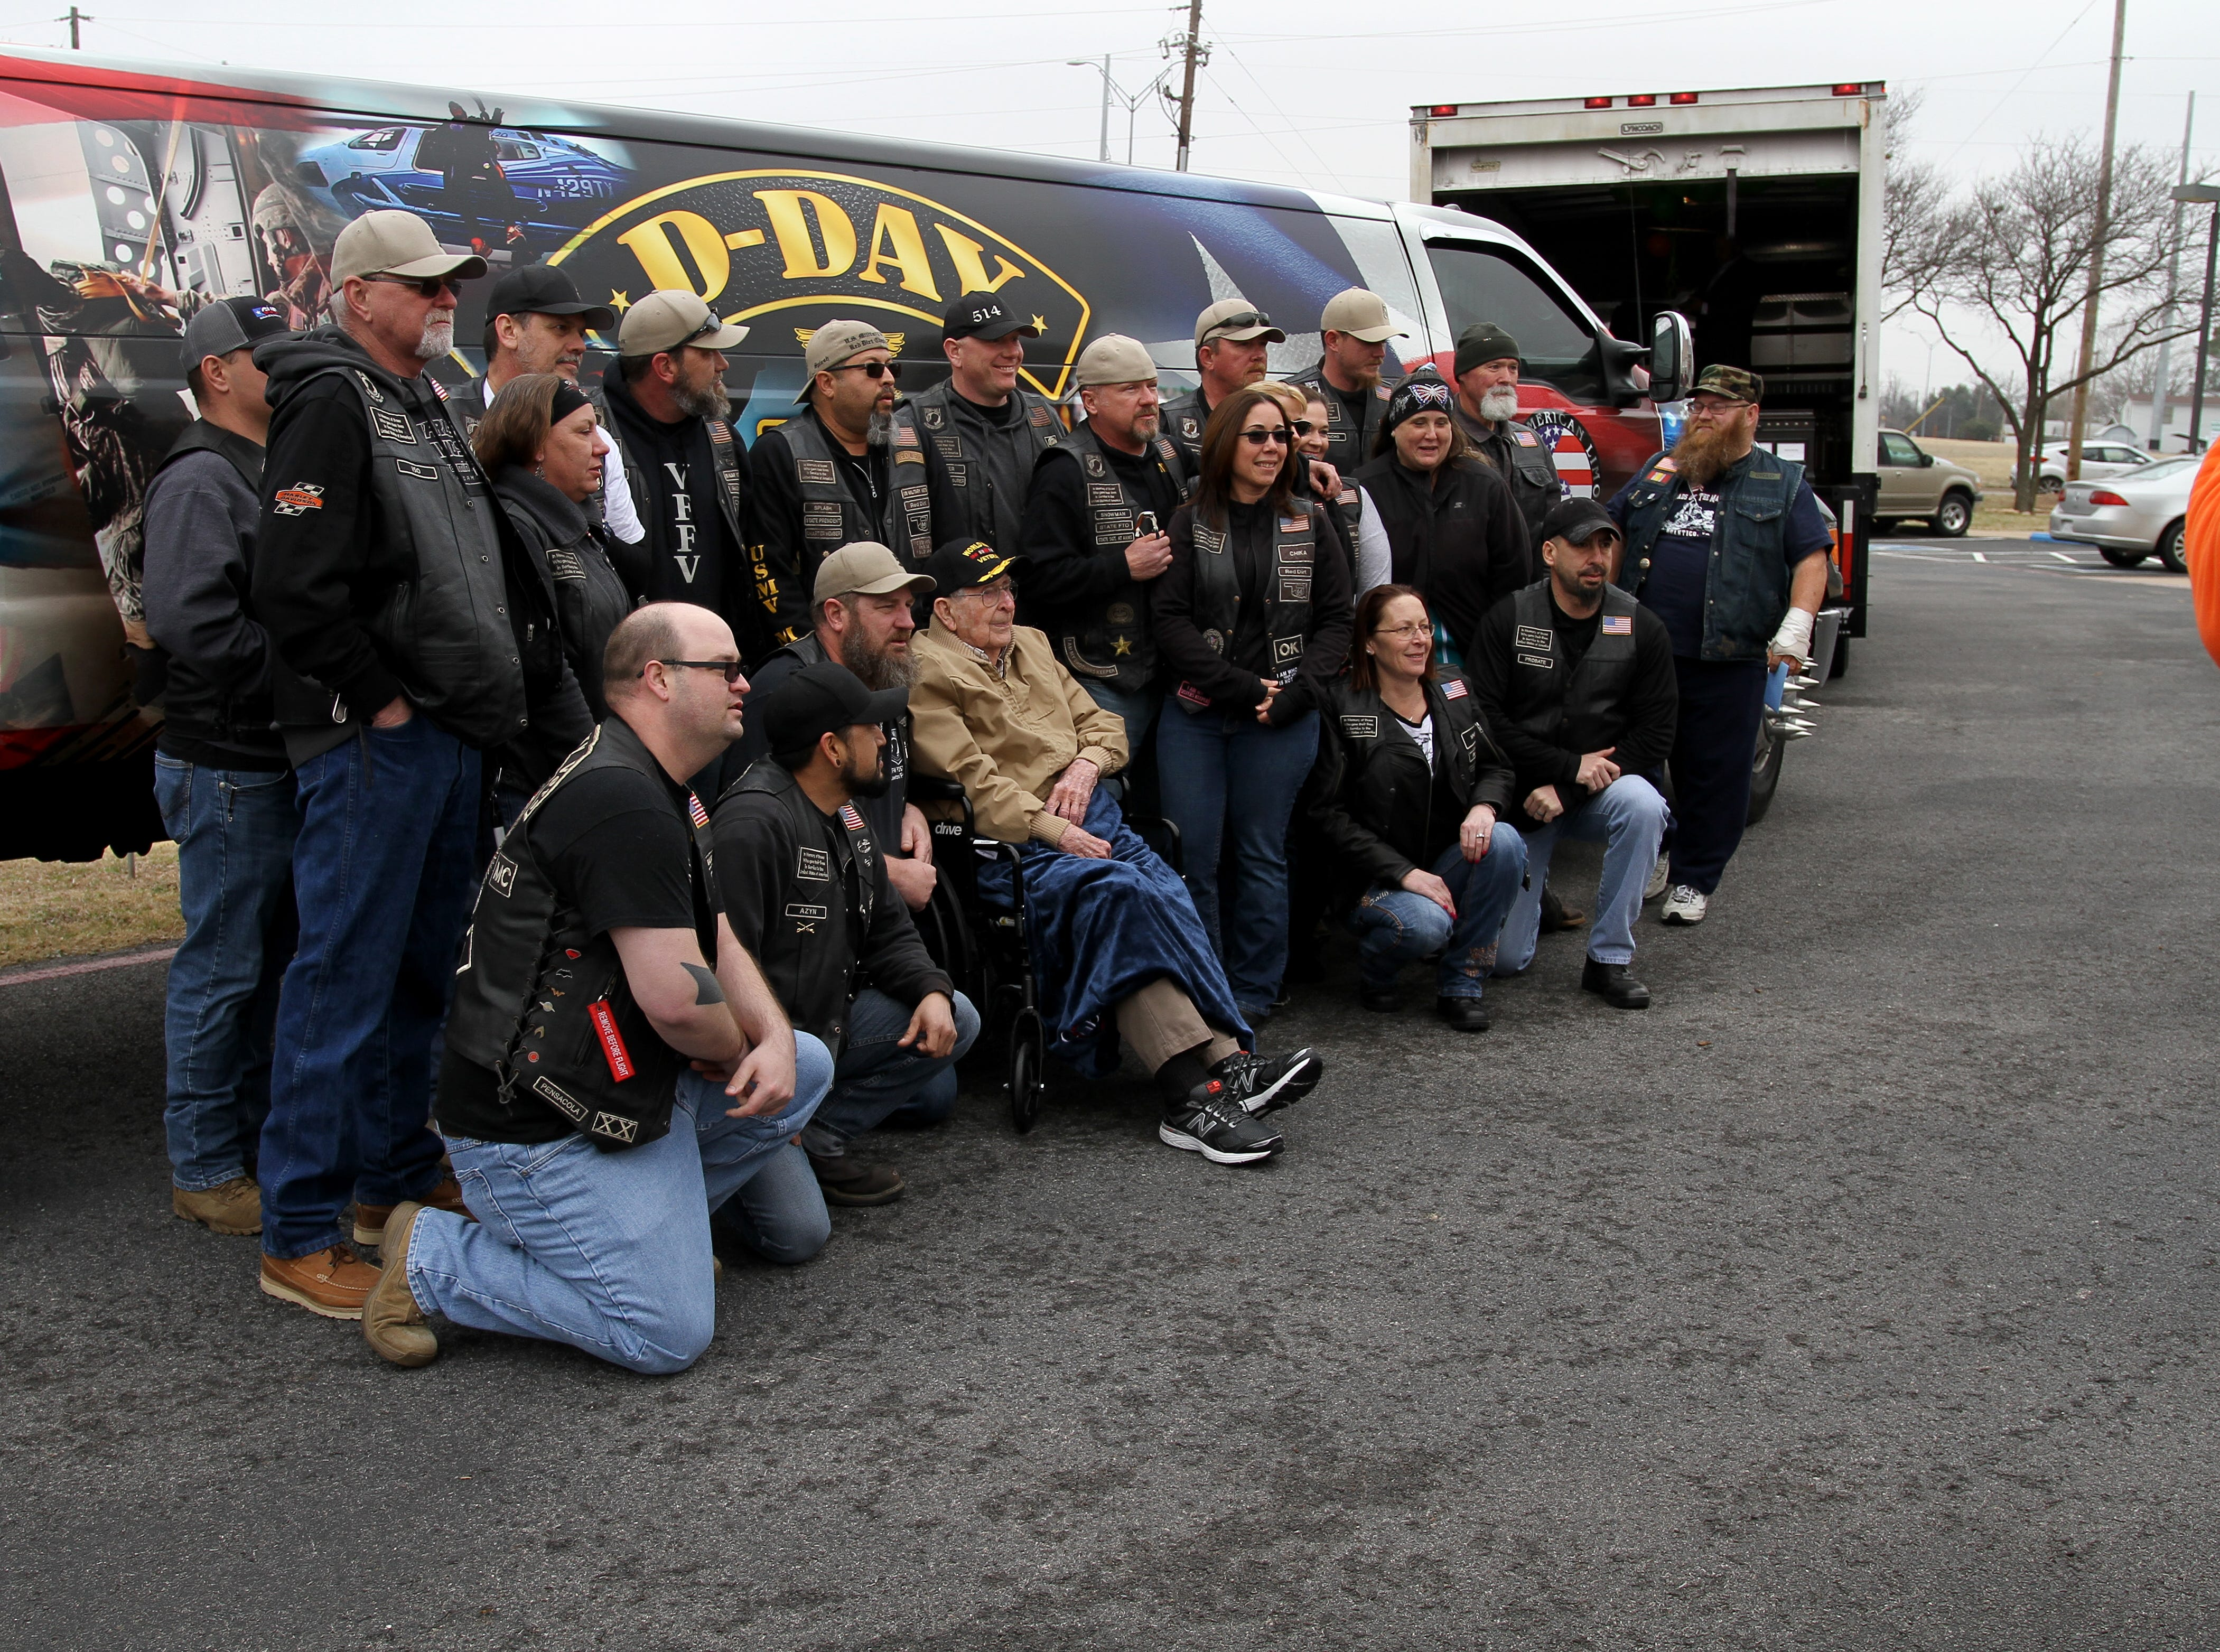 WWII veteran Joe Cuba has his photo taken with the U.S. Military Vets Motorcycle Club at his 100th birthday party Saturday, March 2, 2019, at Brookdale Midwestern.